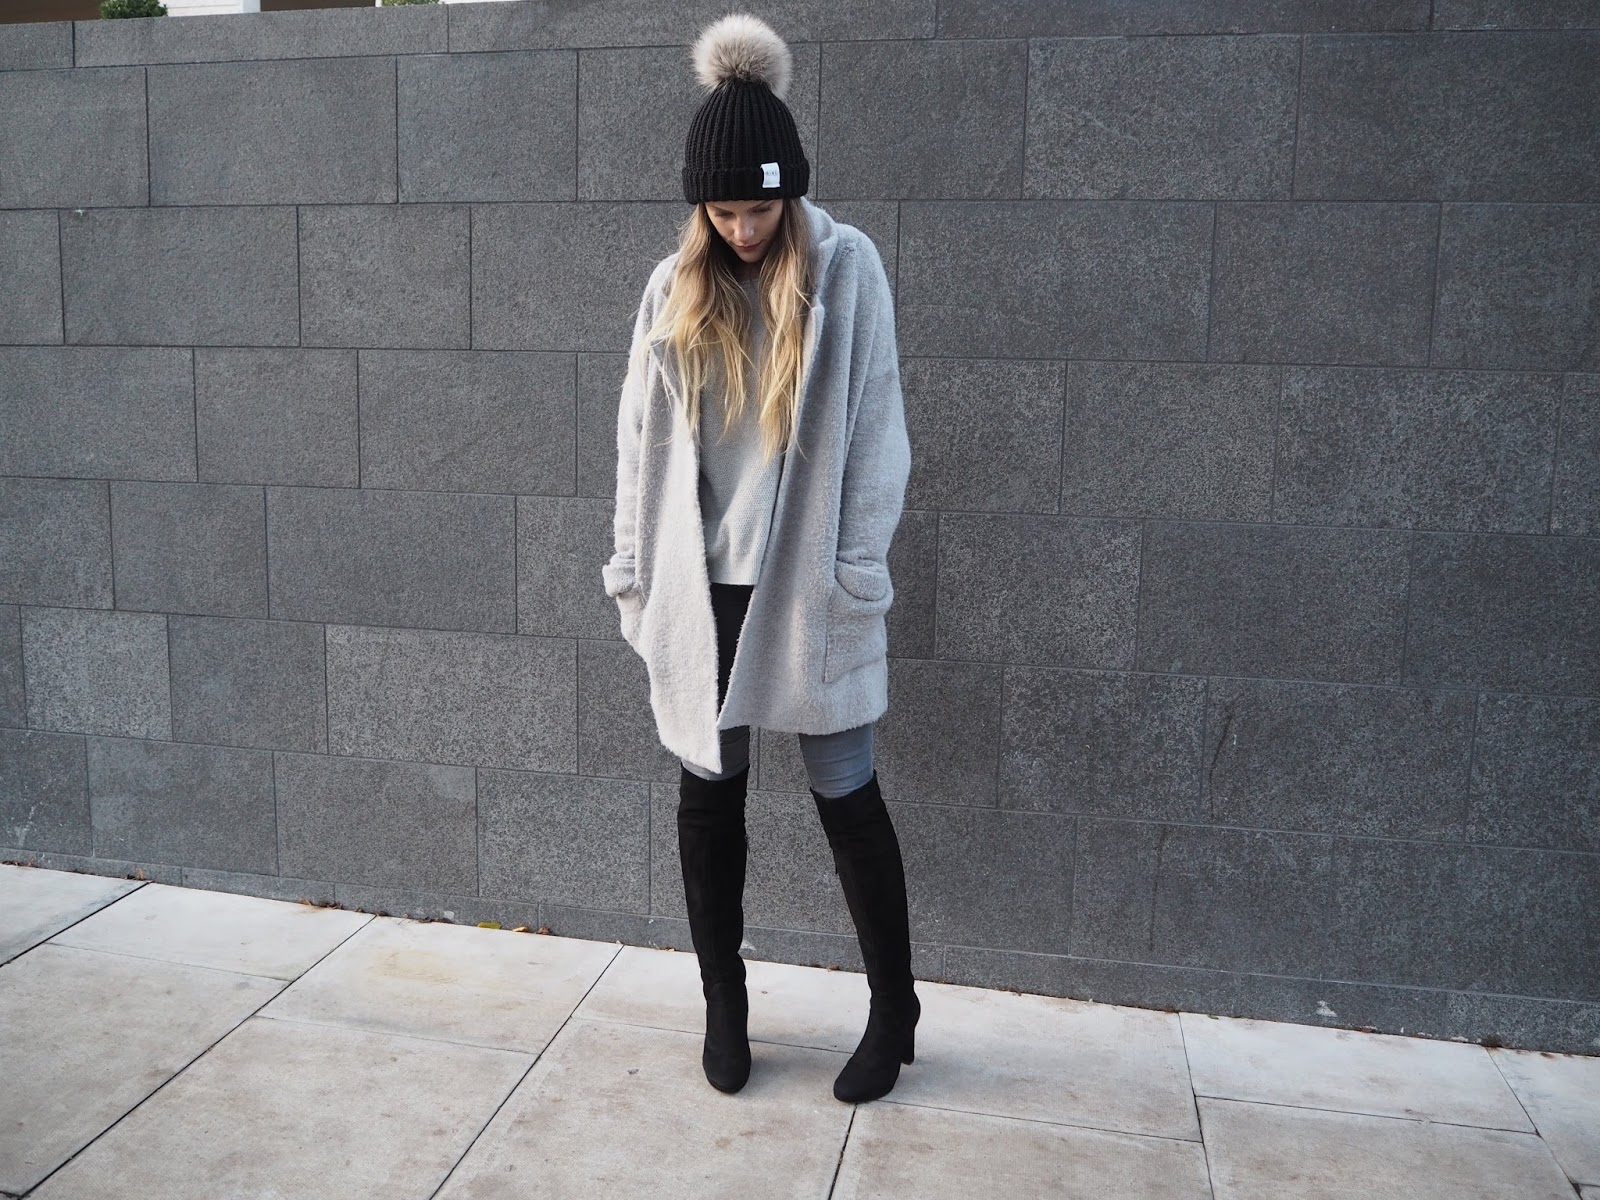 A Few Shades of Grey